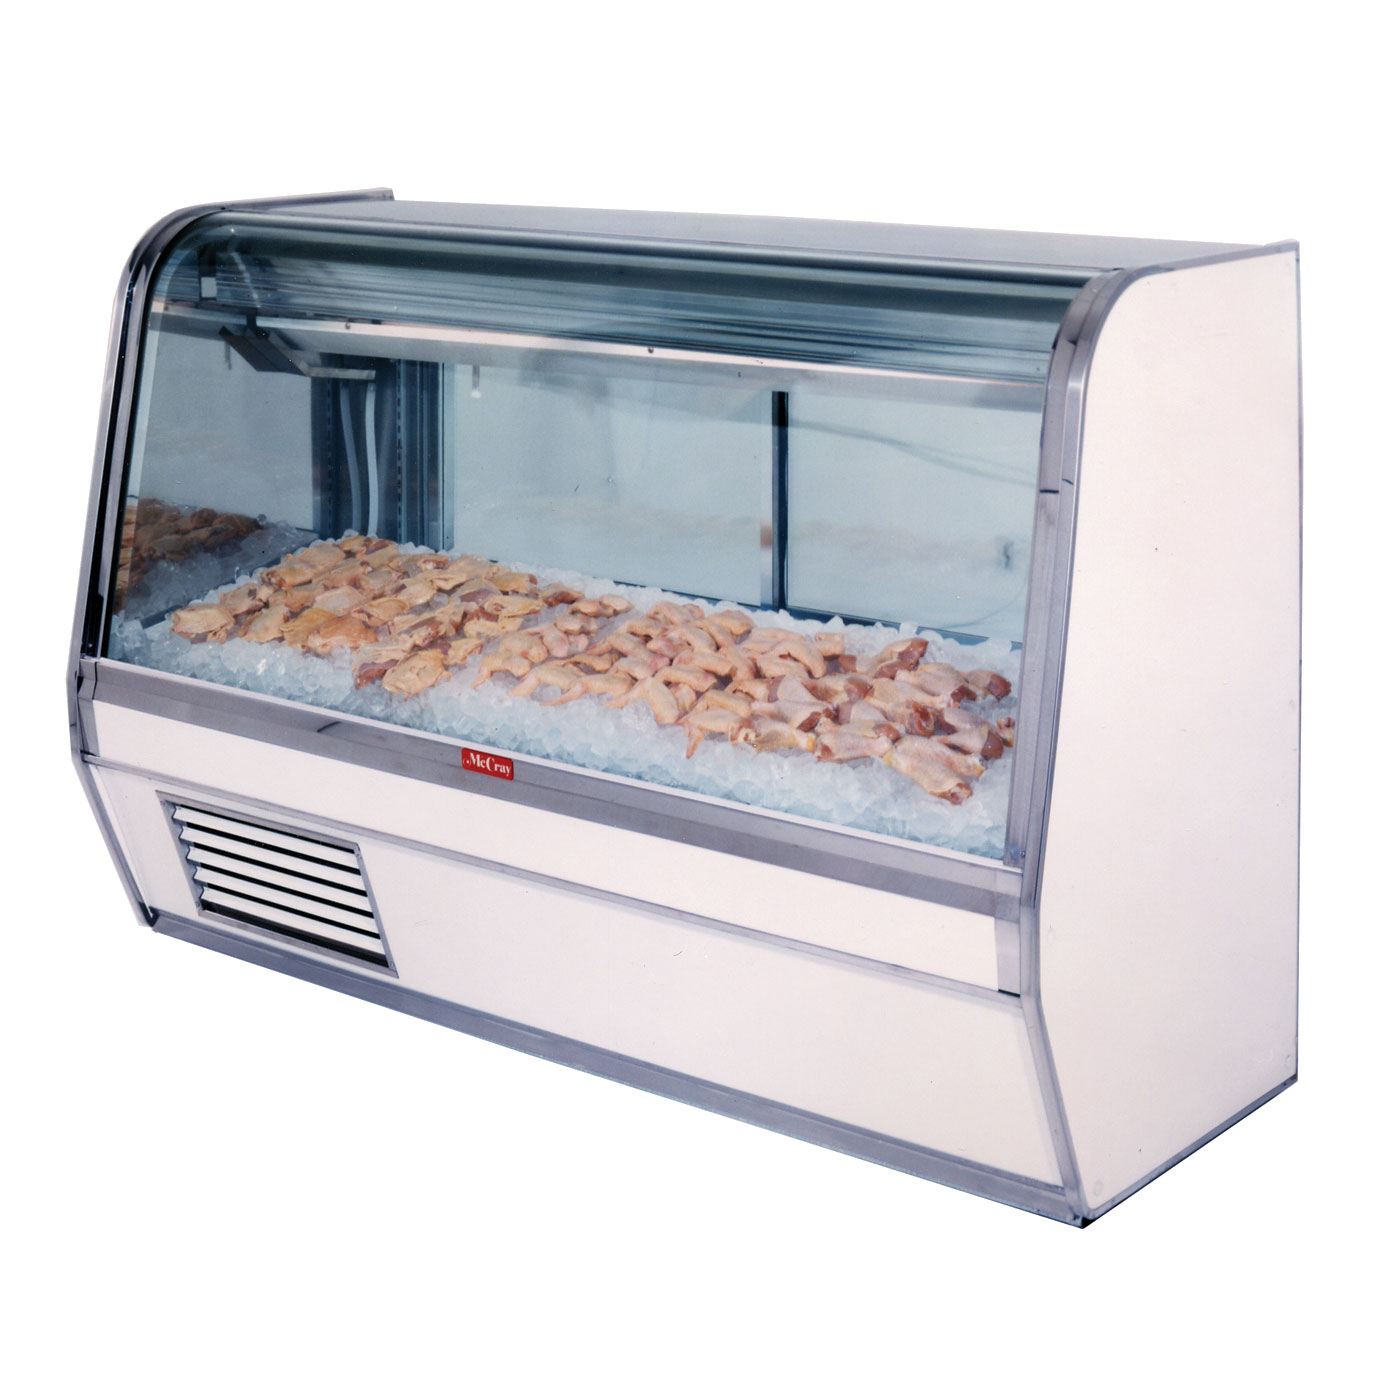 Howard-McCray SC-CFS32E-8C-LED display case, deli seafood / poultry